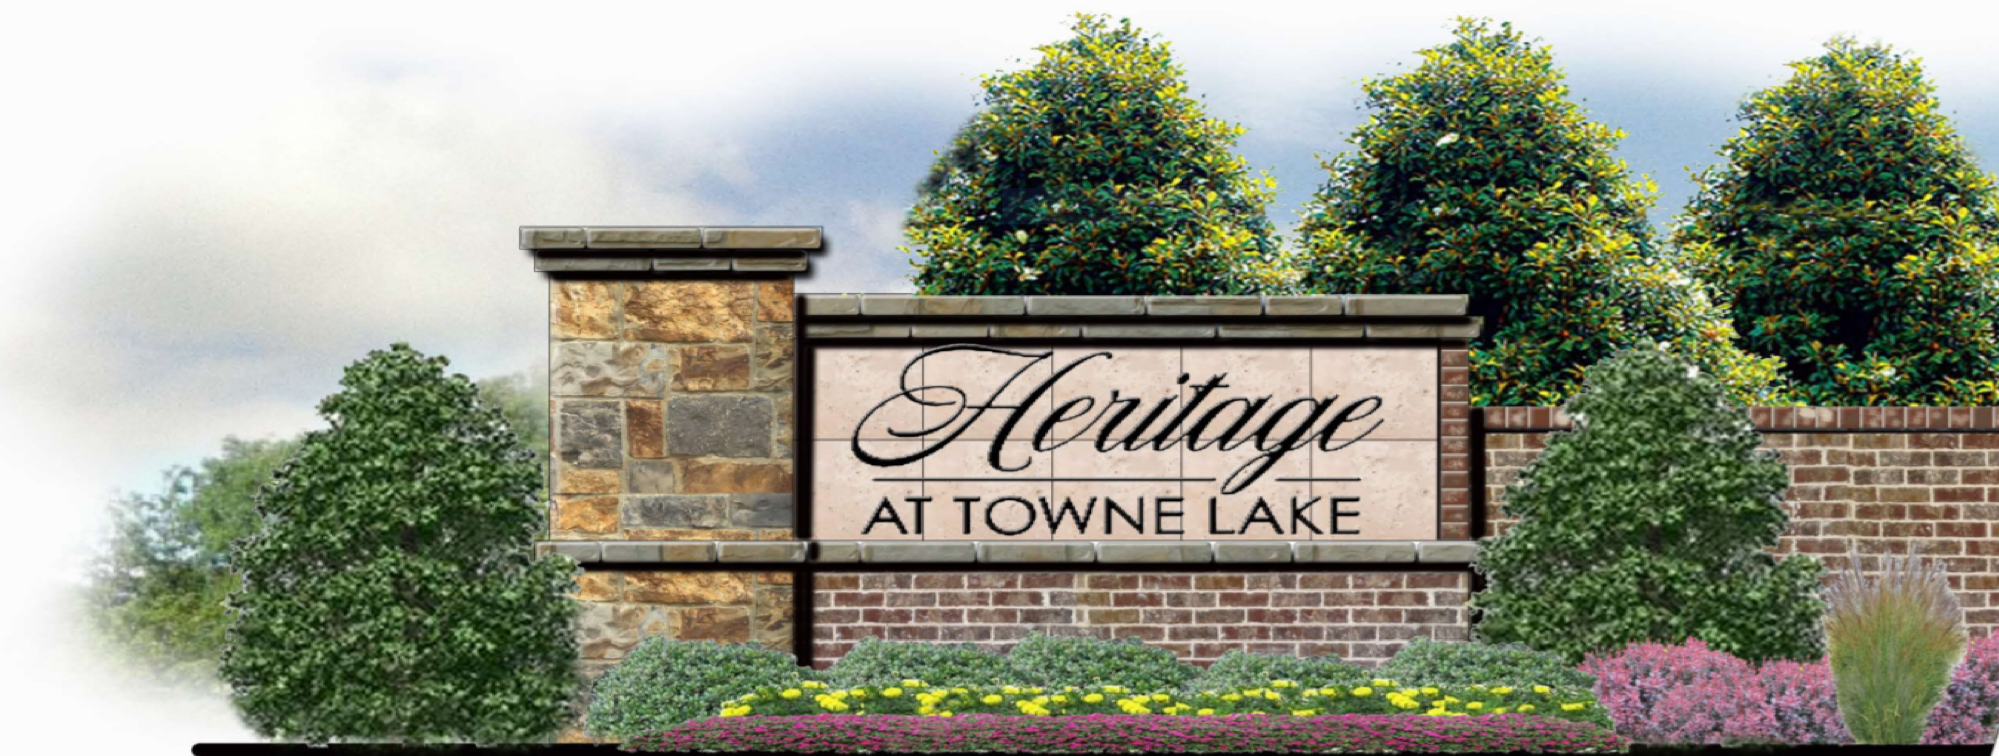 Heritage at Towne Lake